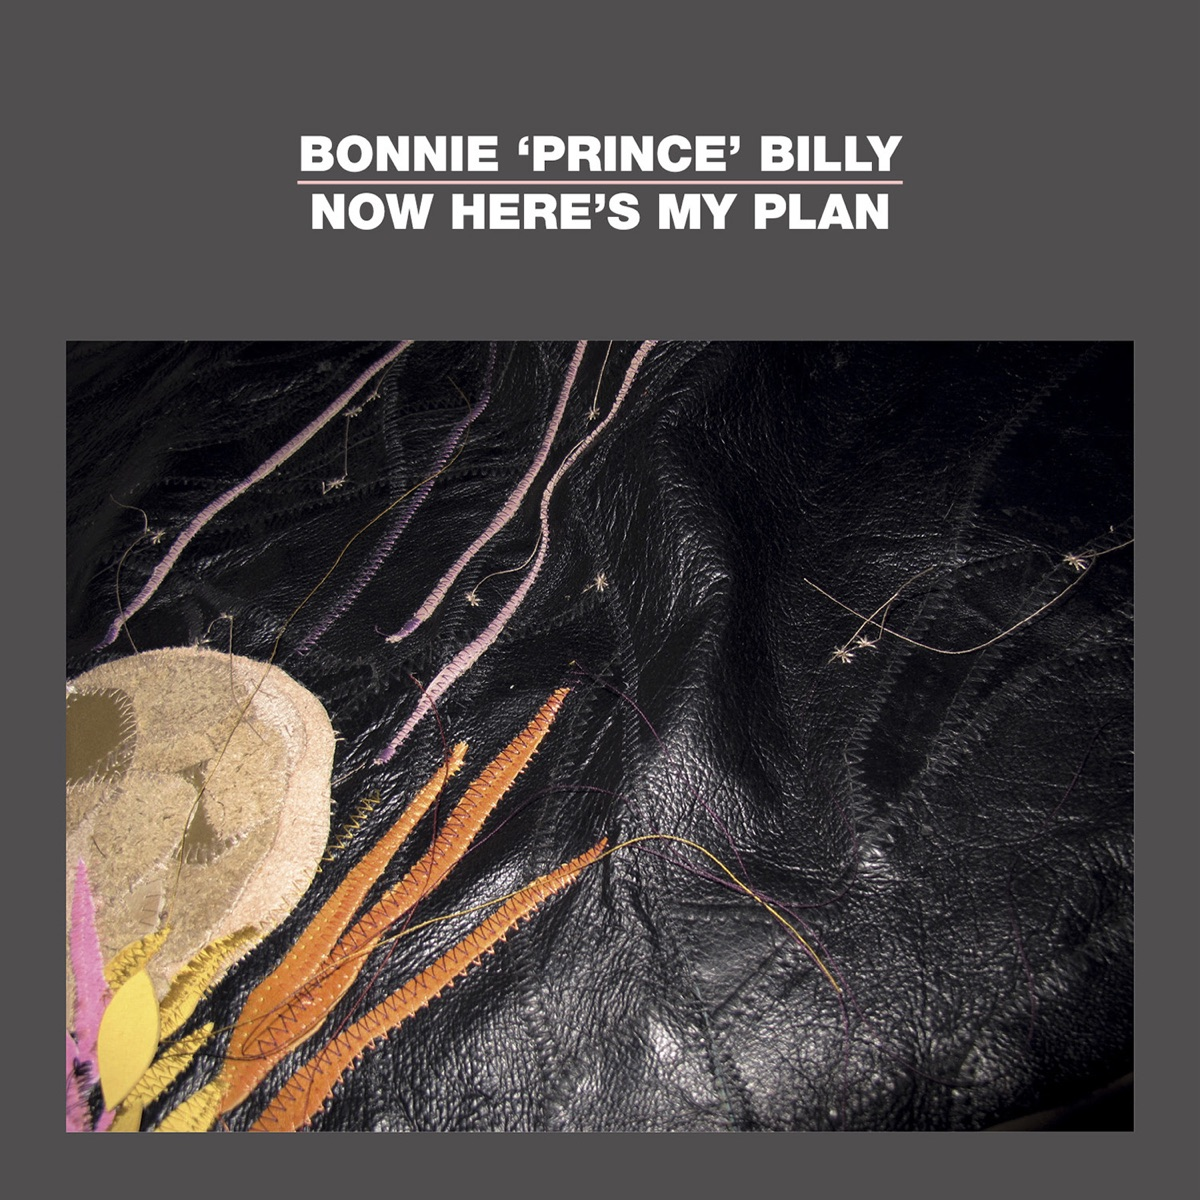 Now Heres My Plan - EP Bonnie Prince Billy CD cover